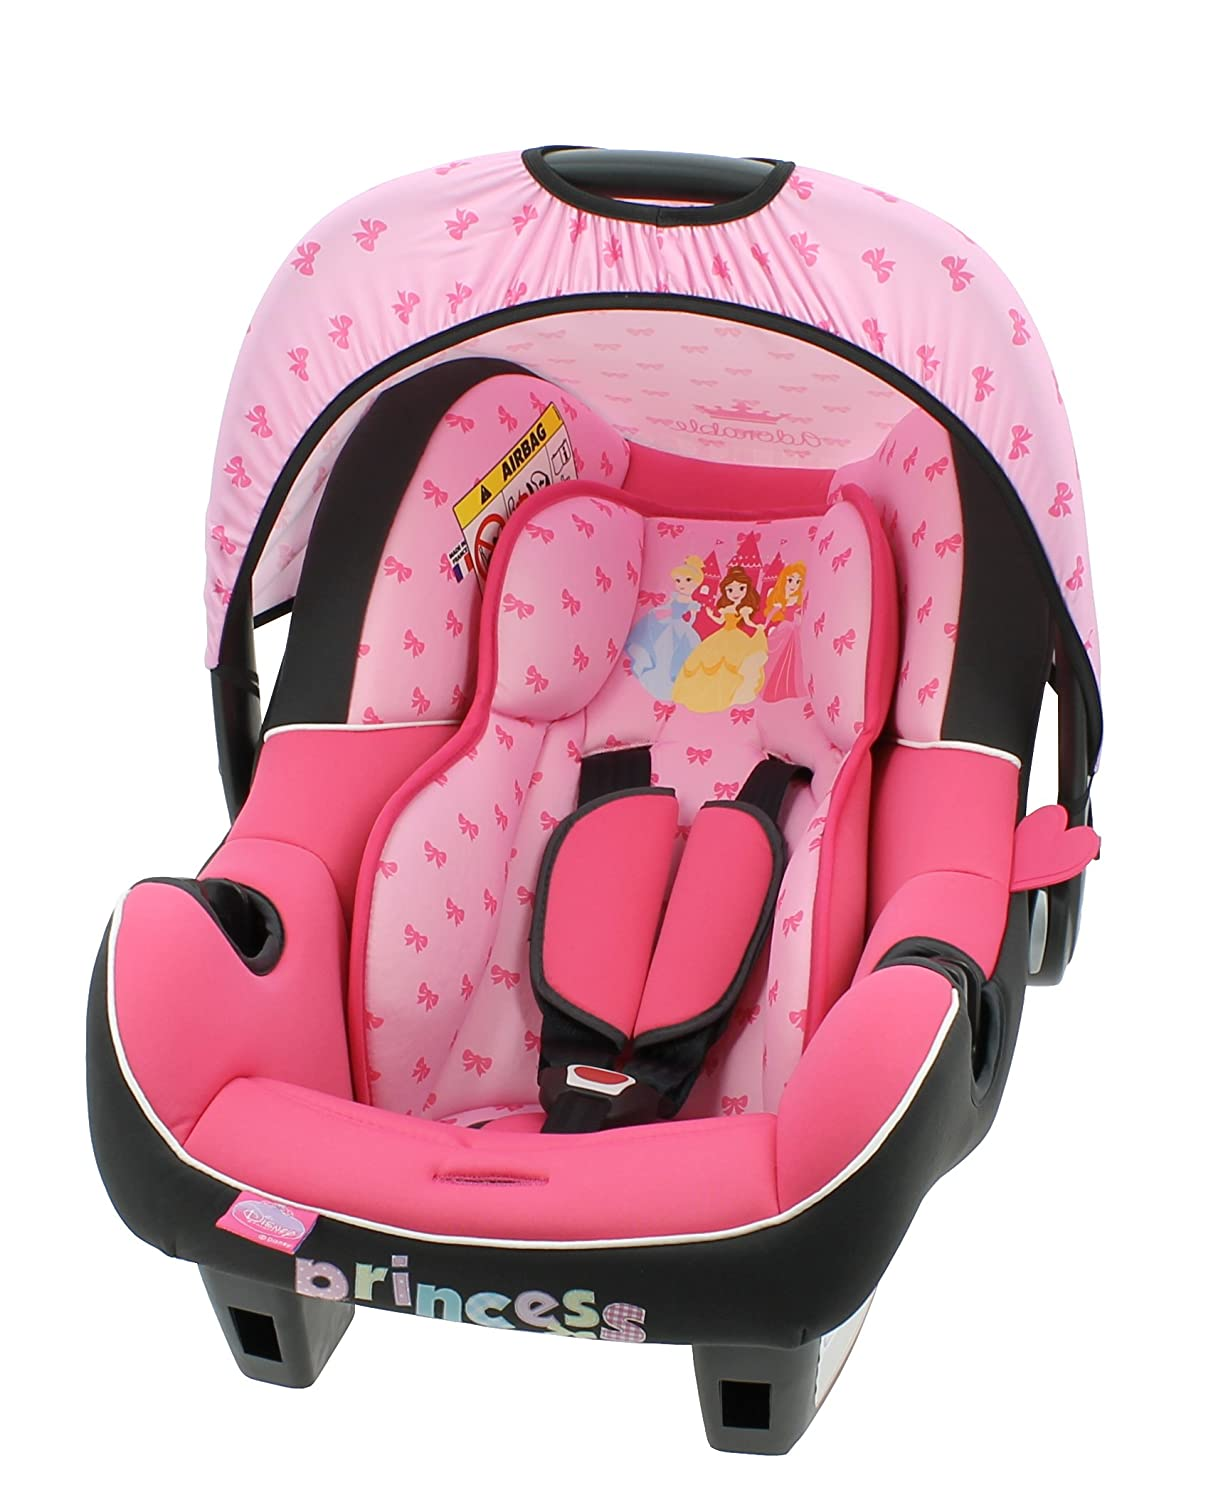 Disney Princess Beone SP Infant Carrier Car Seat 498259